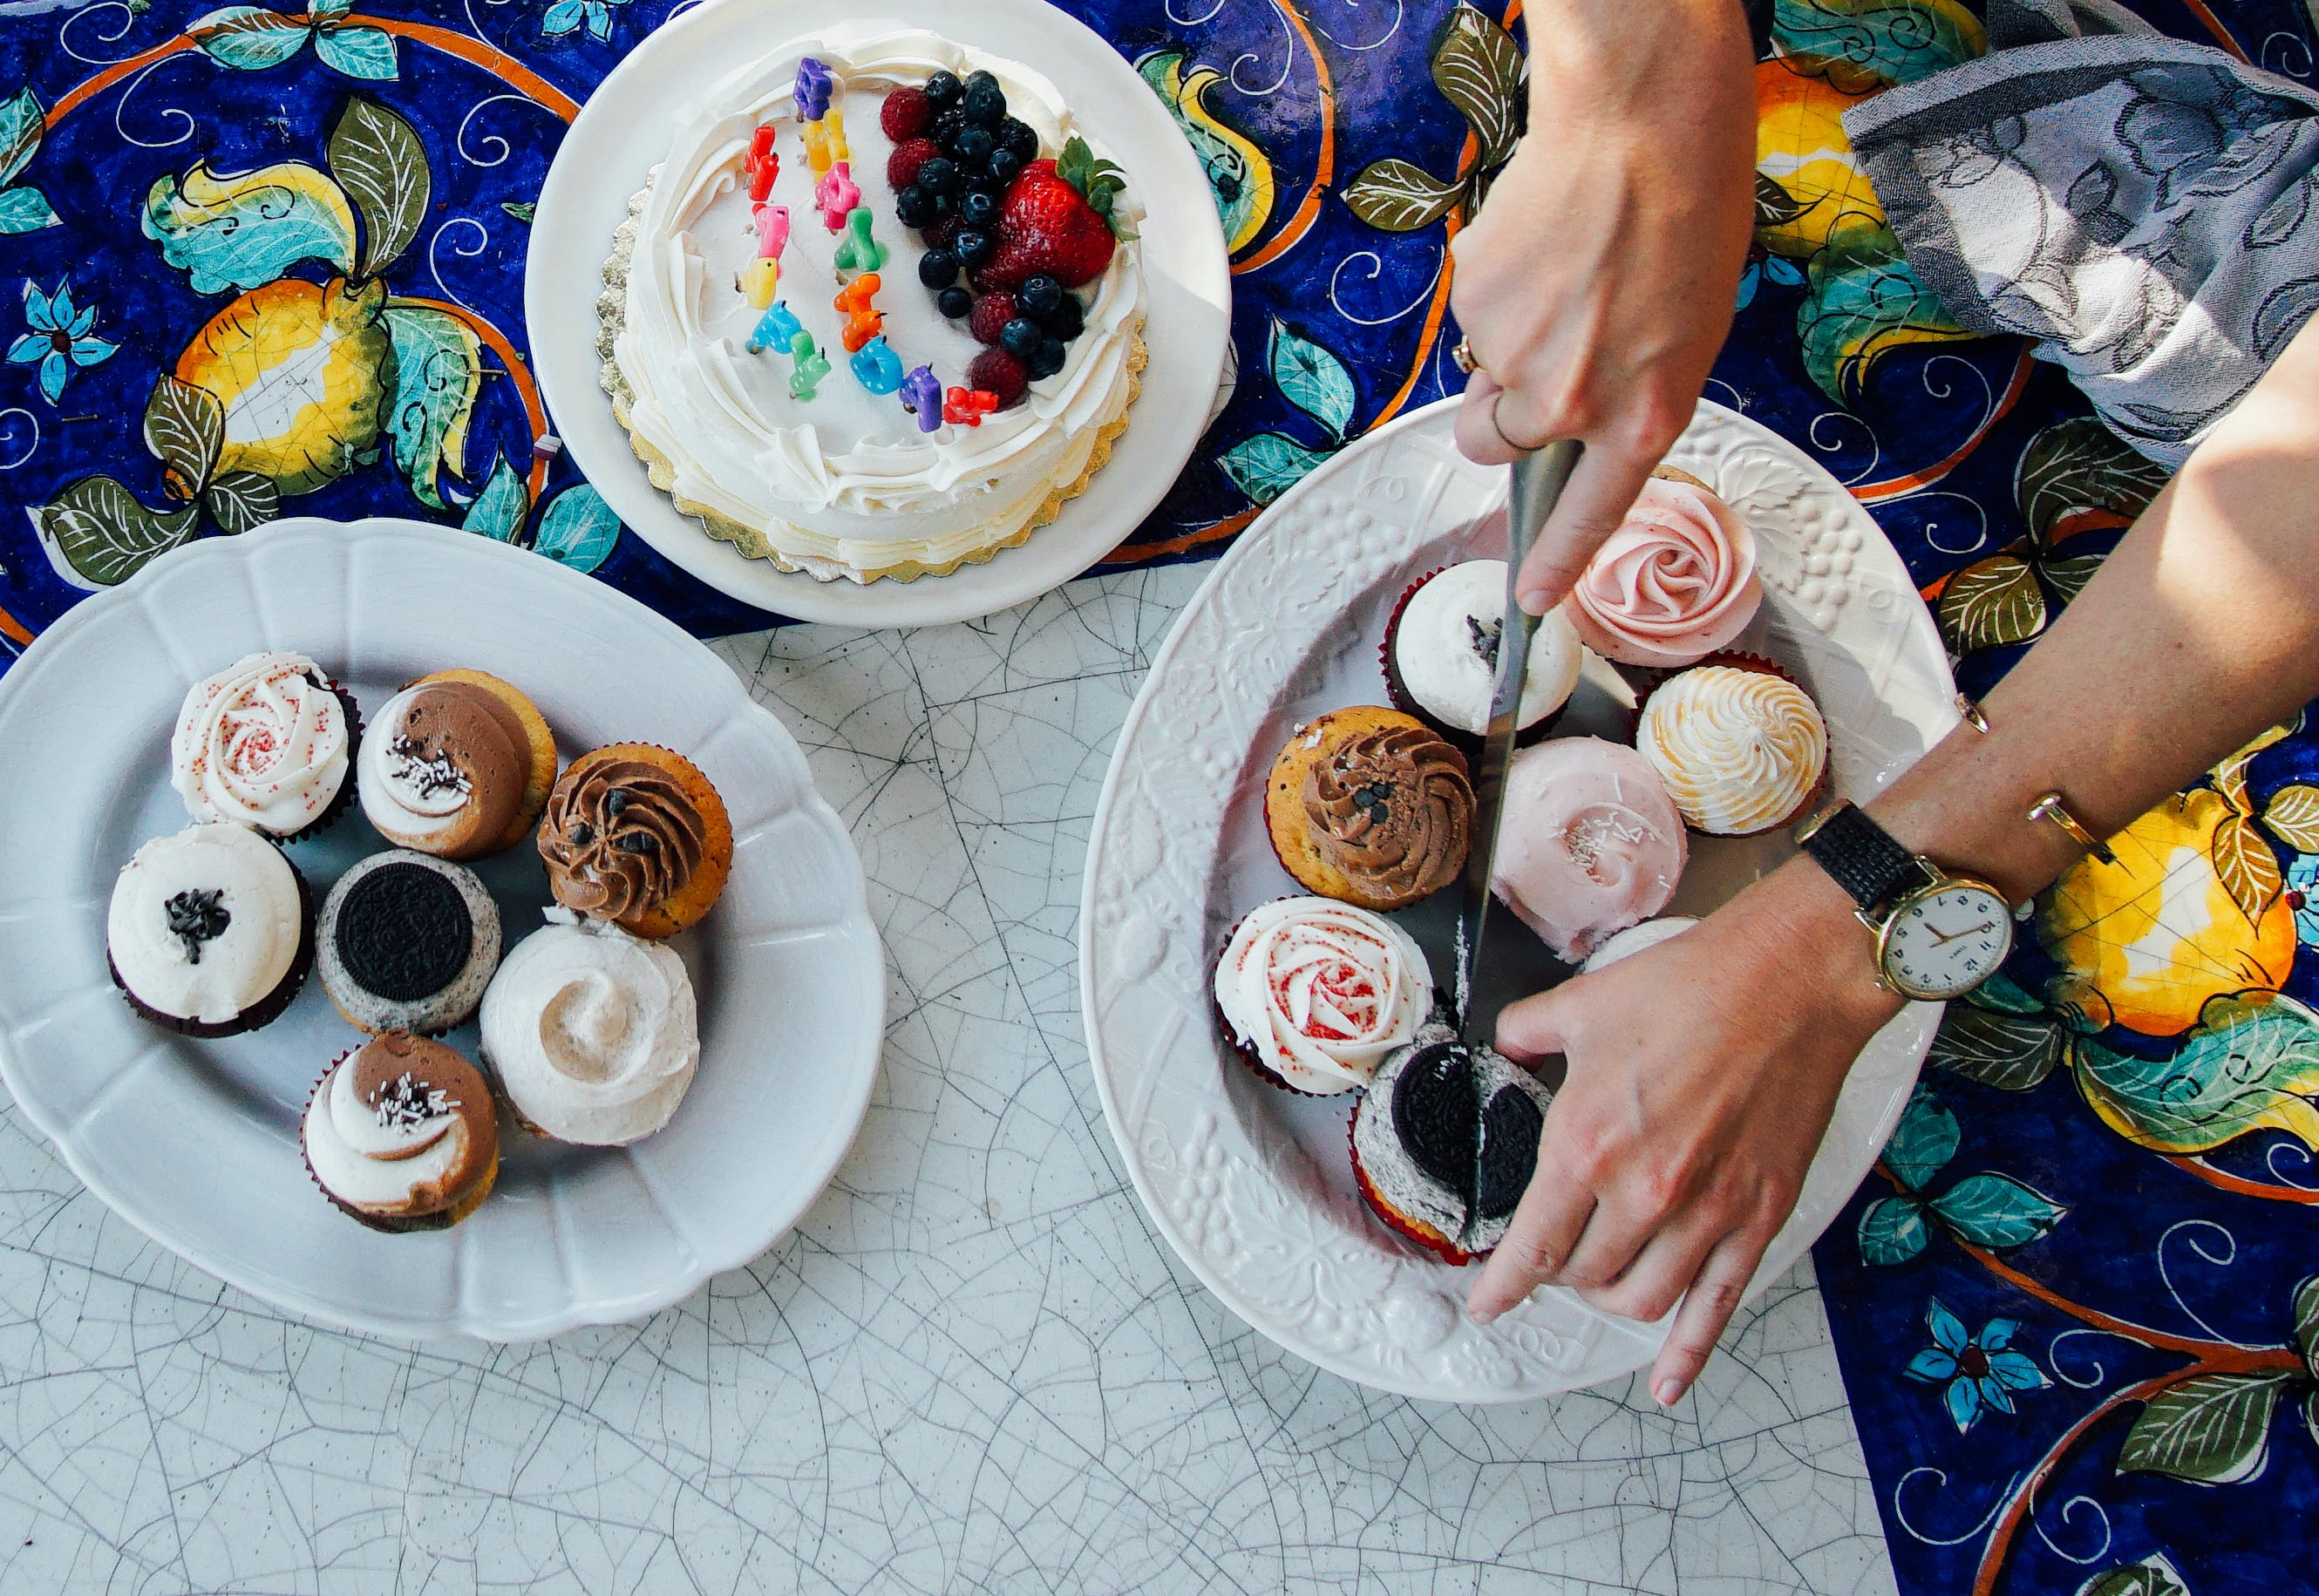 Free stock photo of food, party, dessert, celebrate